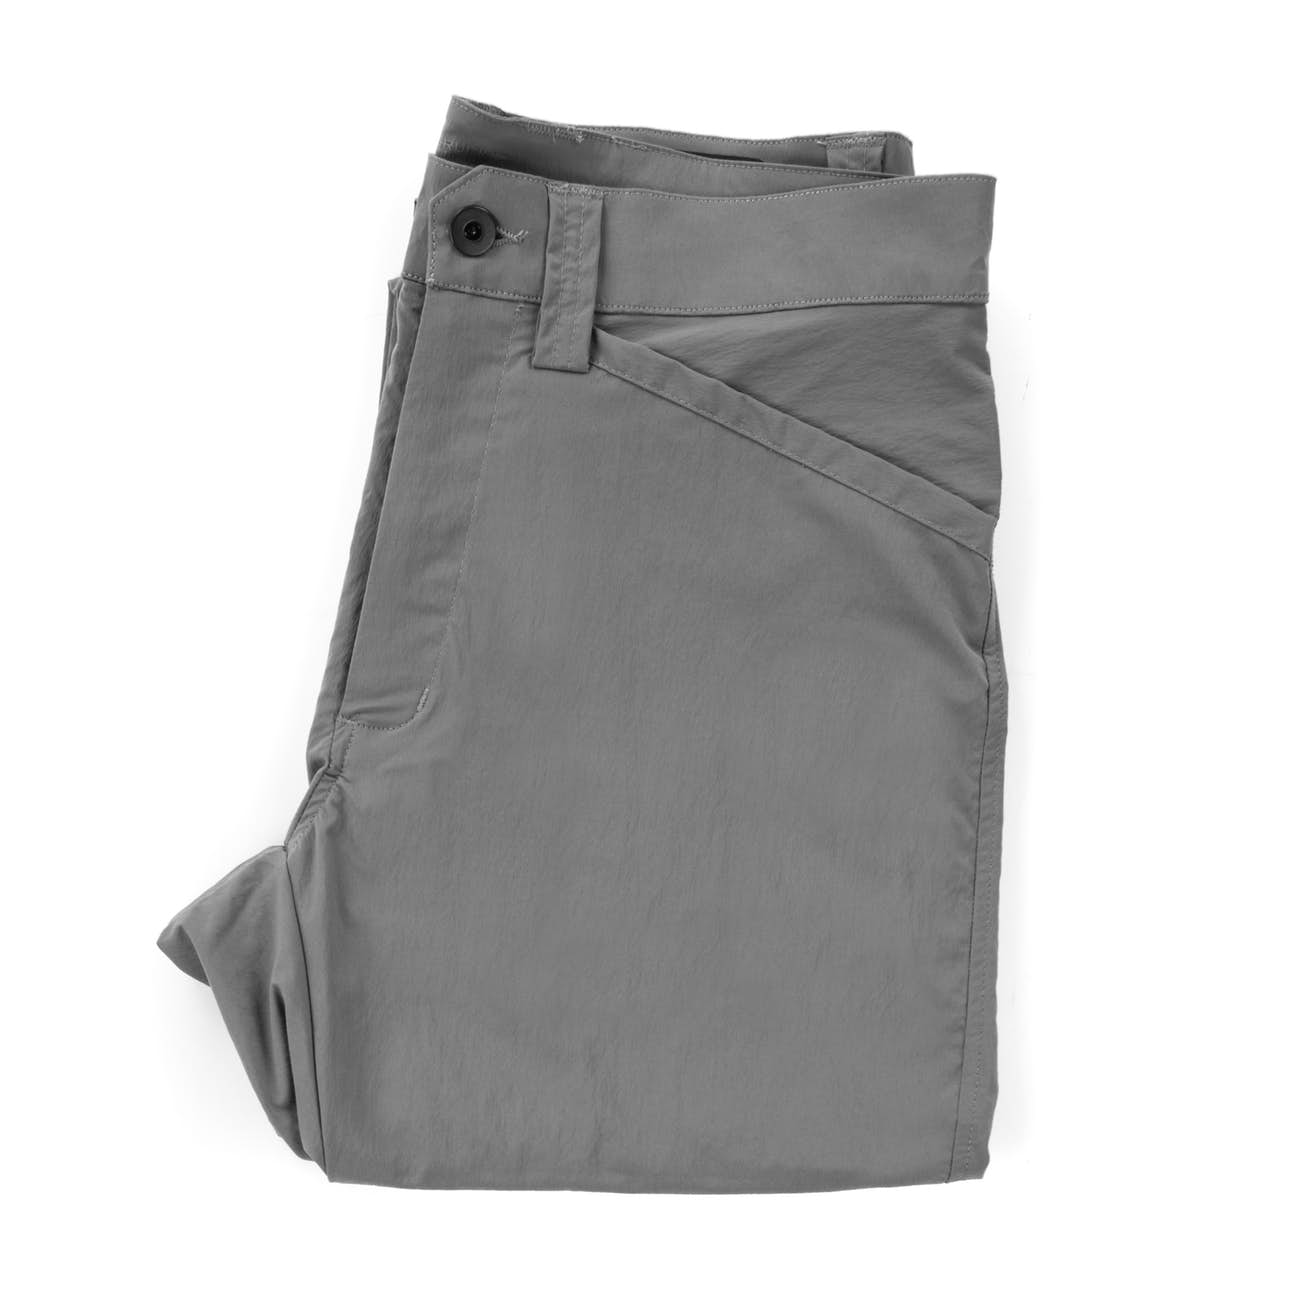 goruck simple pants grey